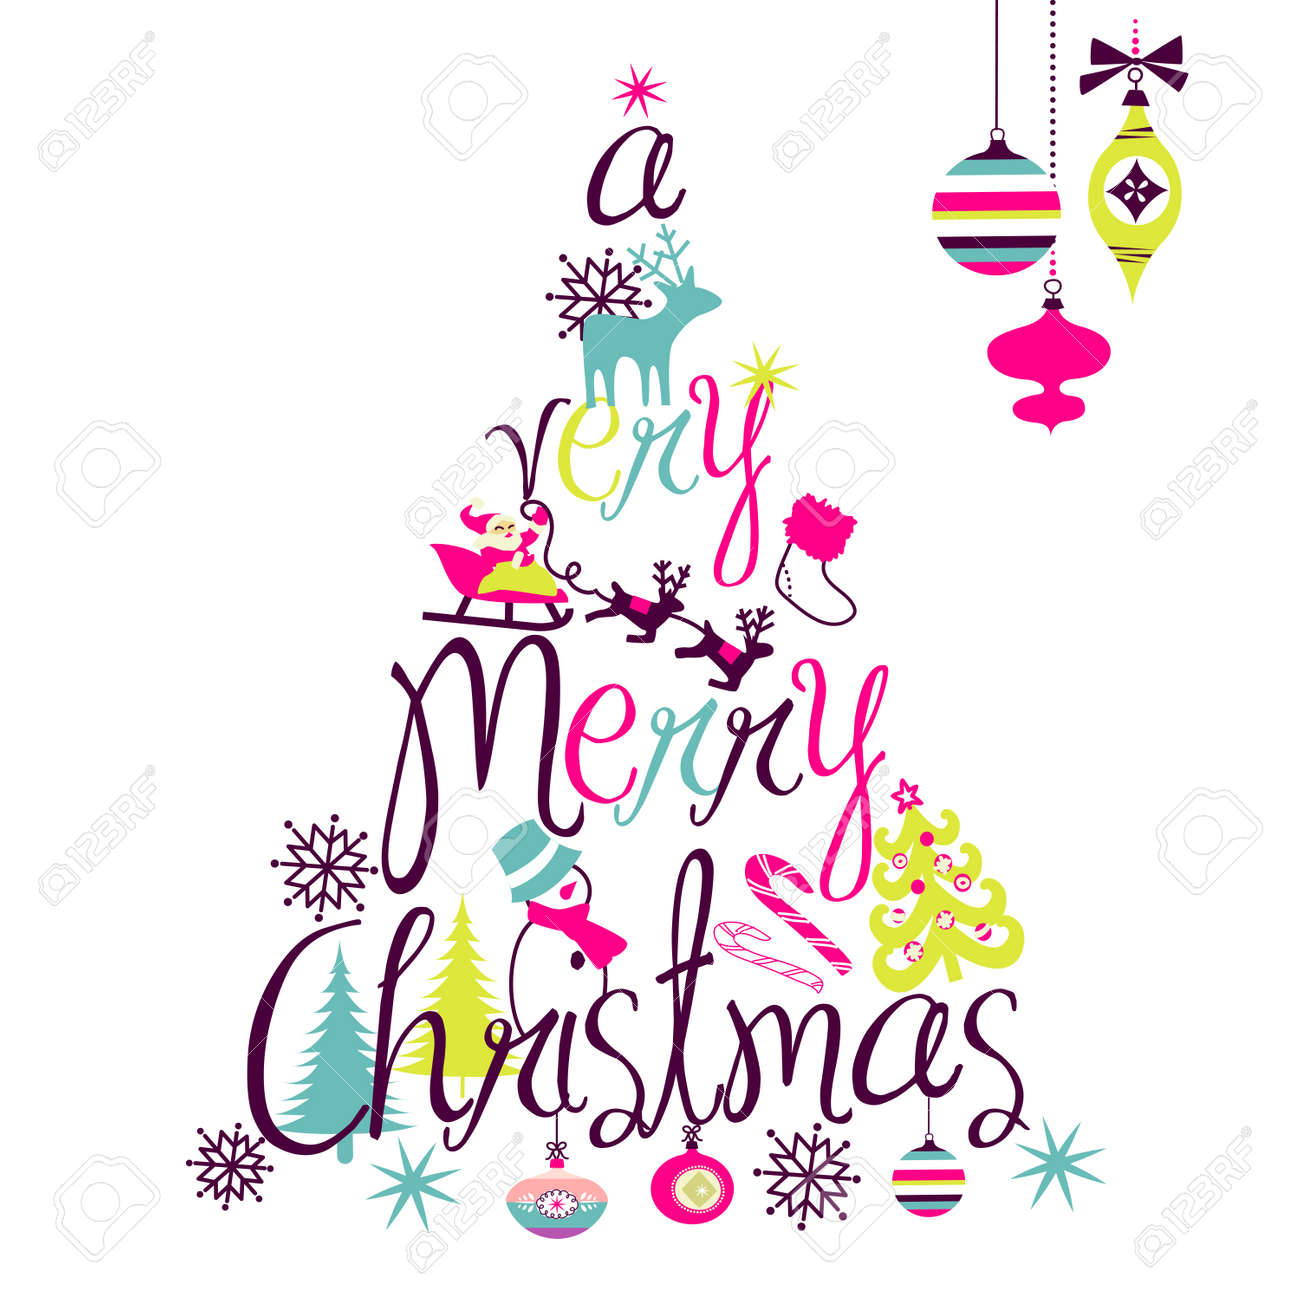 a very merry christmas tree design stock vector 16680975 - Pictures For Christmas